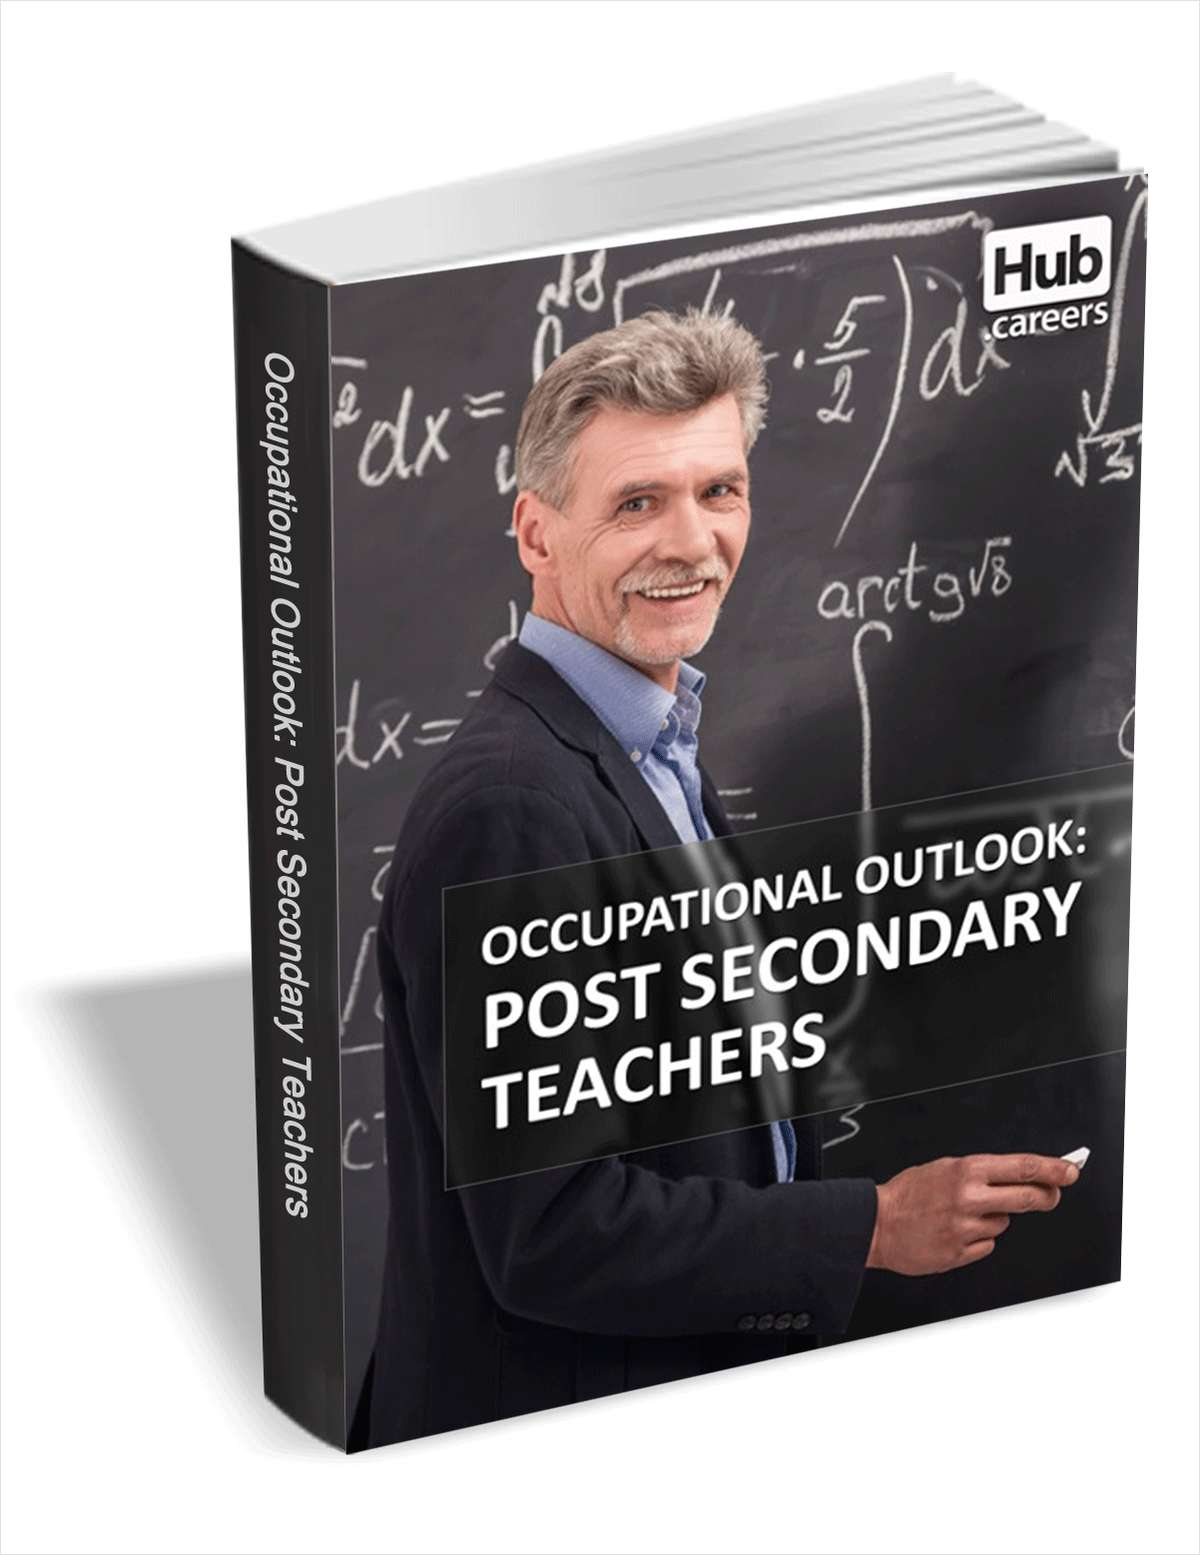 Post Secondary Teachers - Occupational Outlook